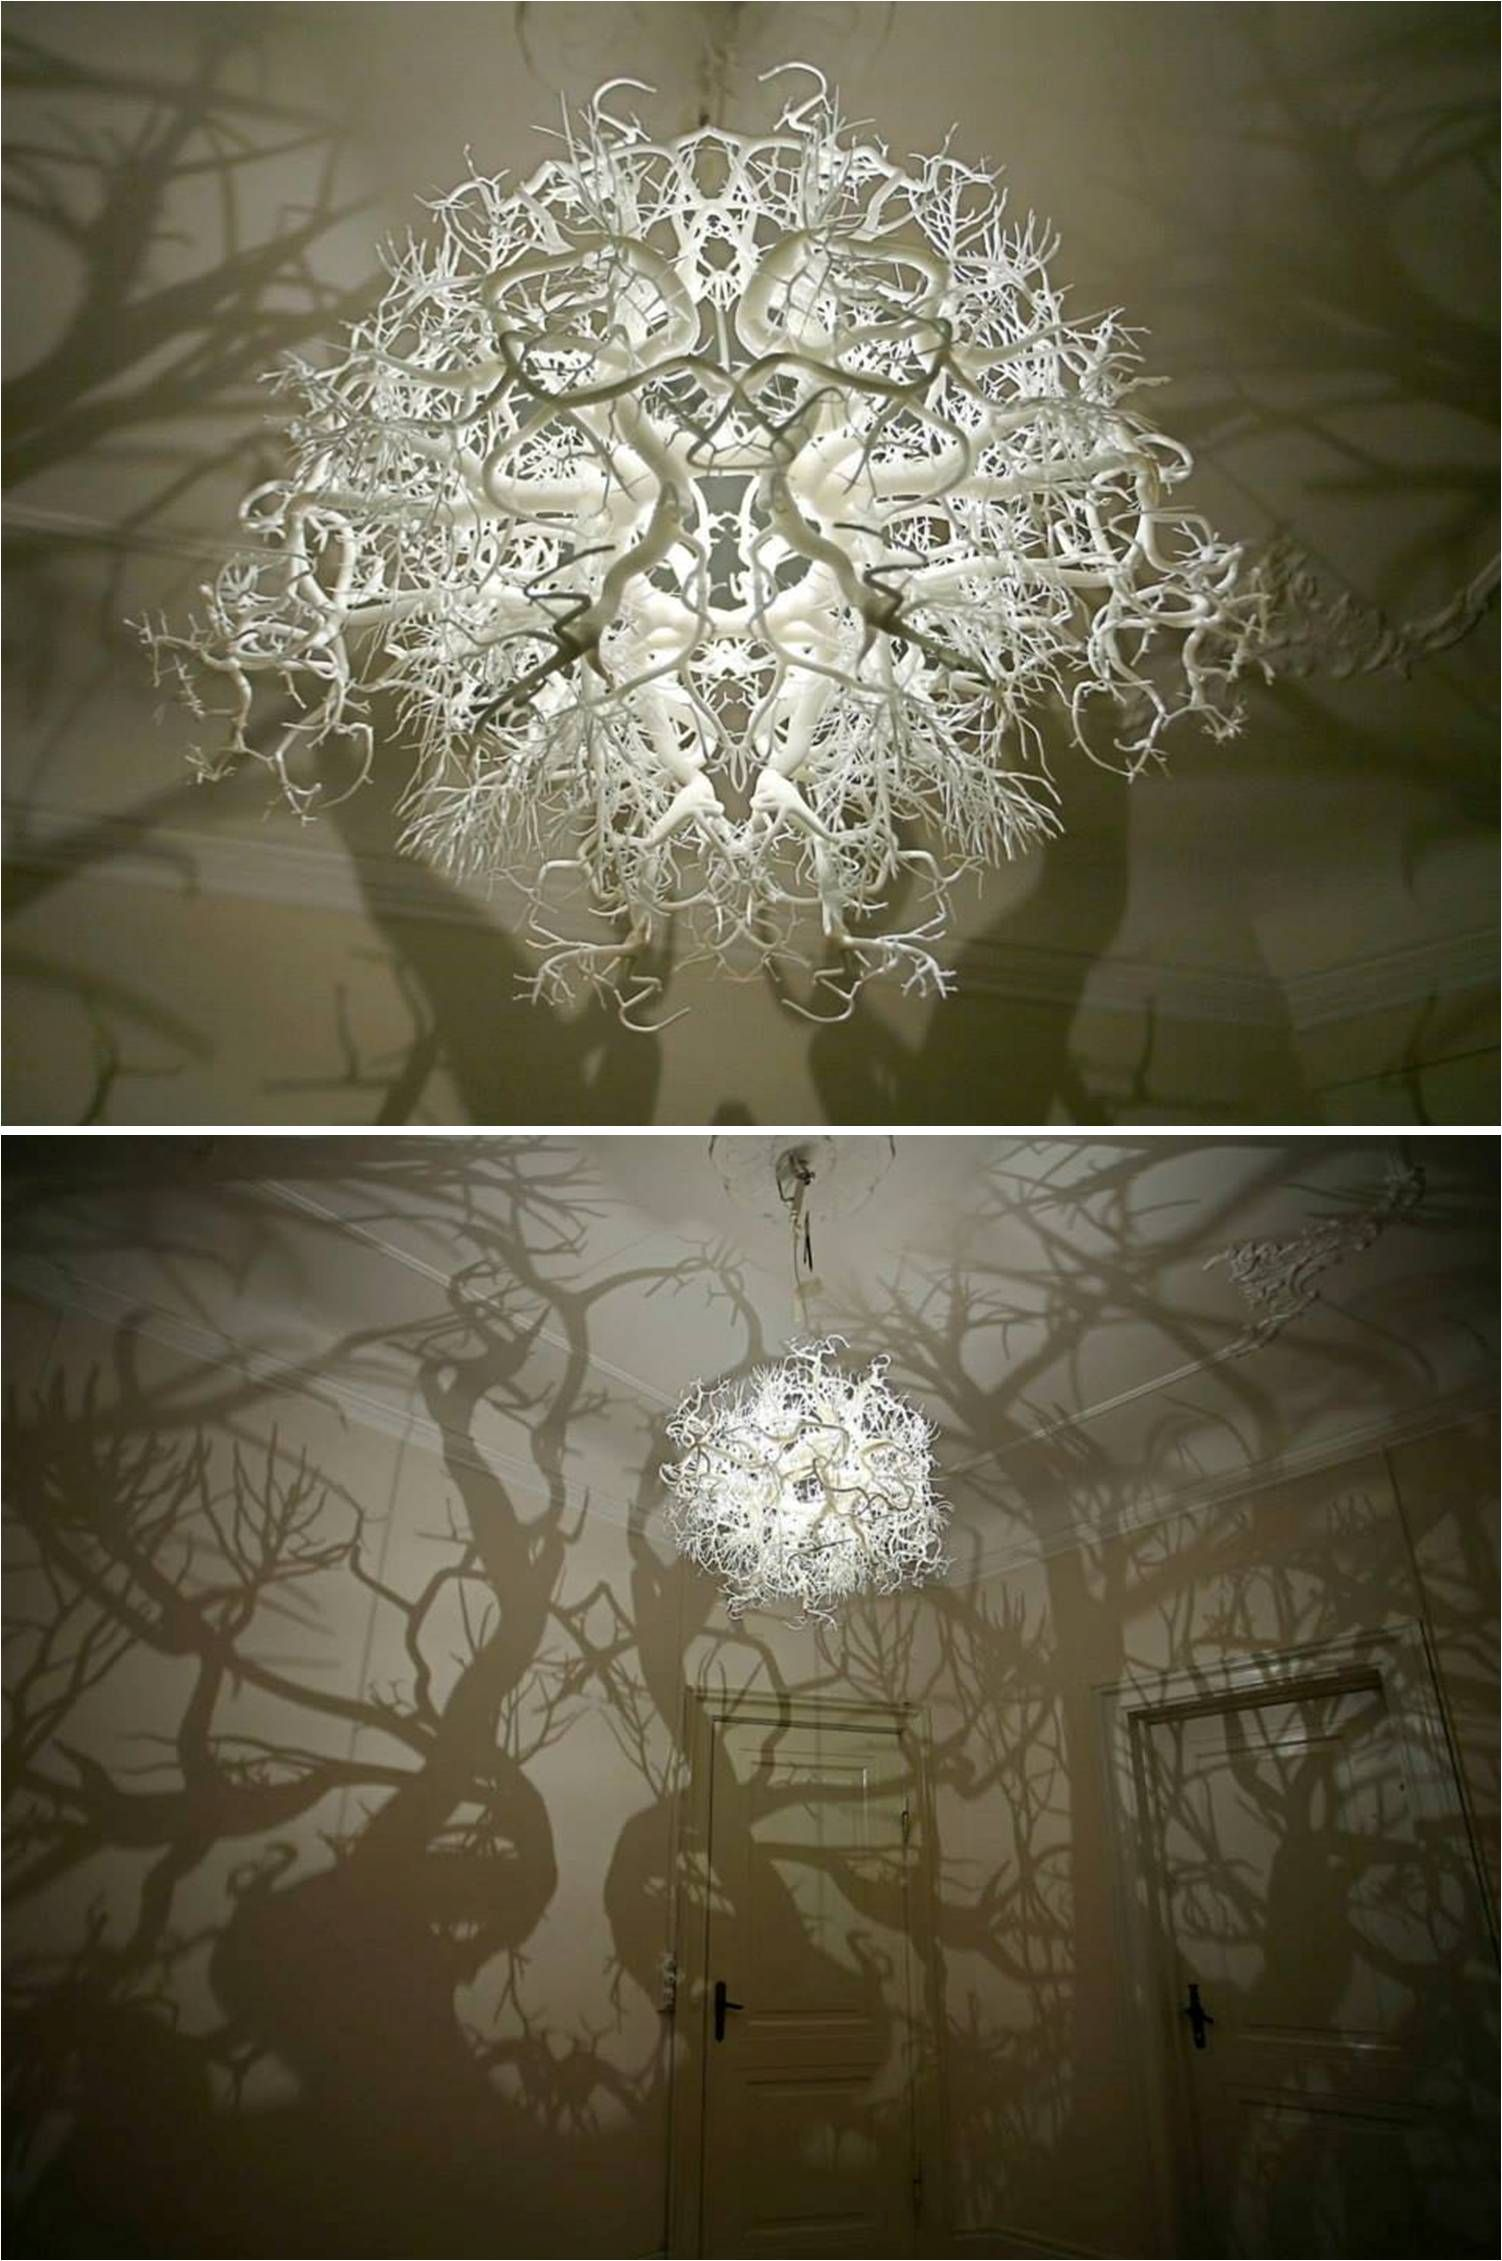 This remarkable chandelier from Hilden & Diaz projects a 360